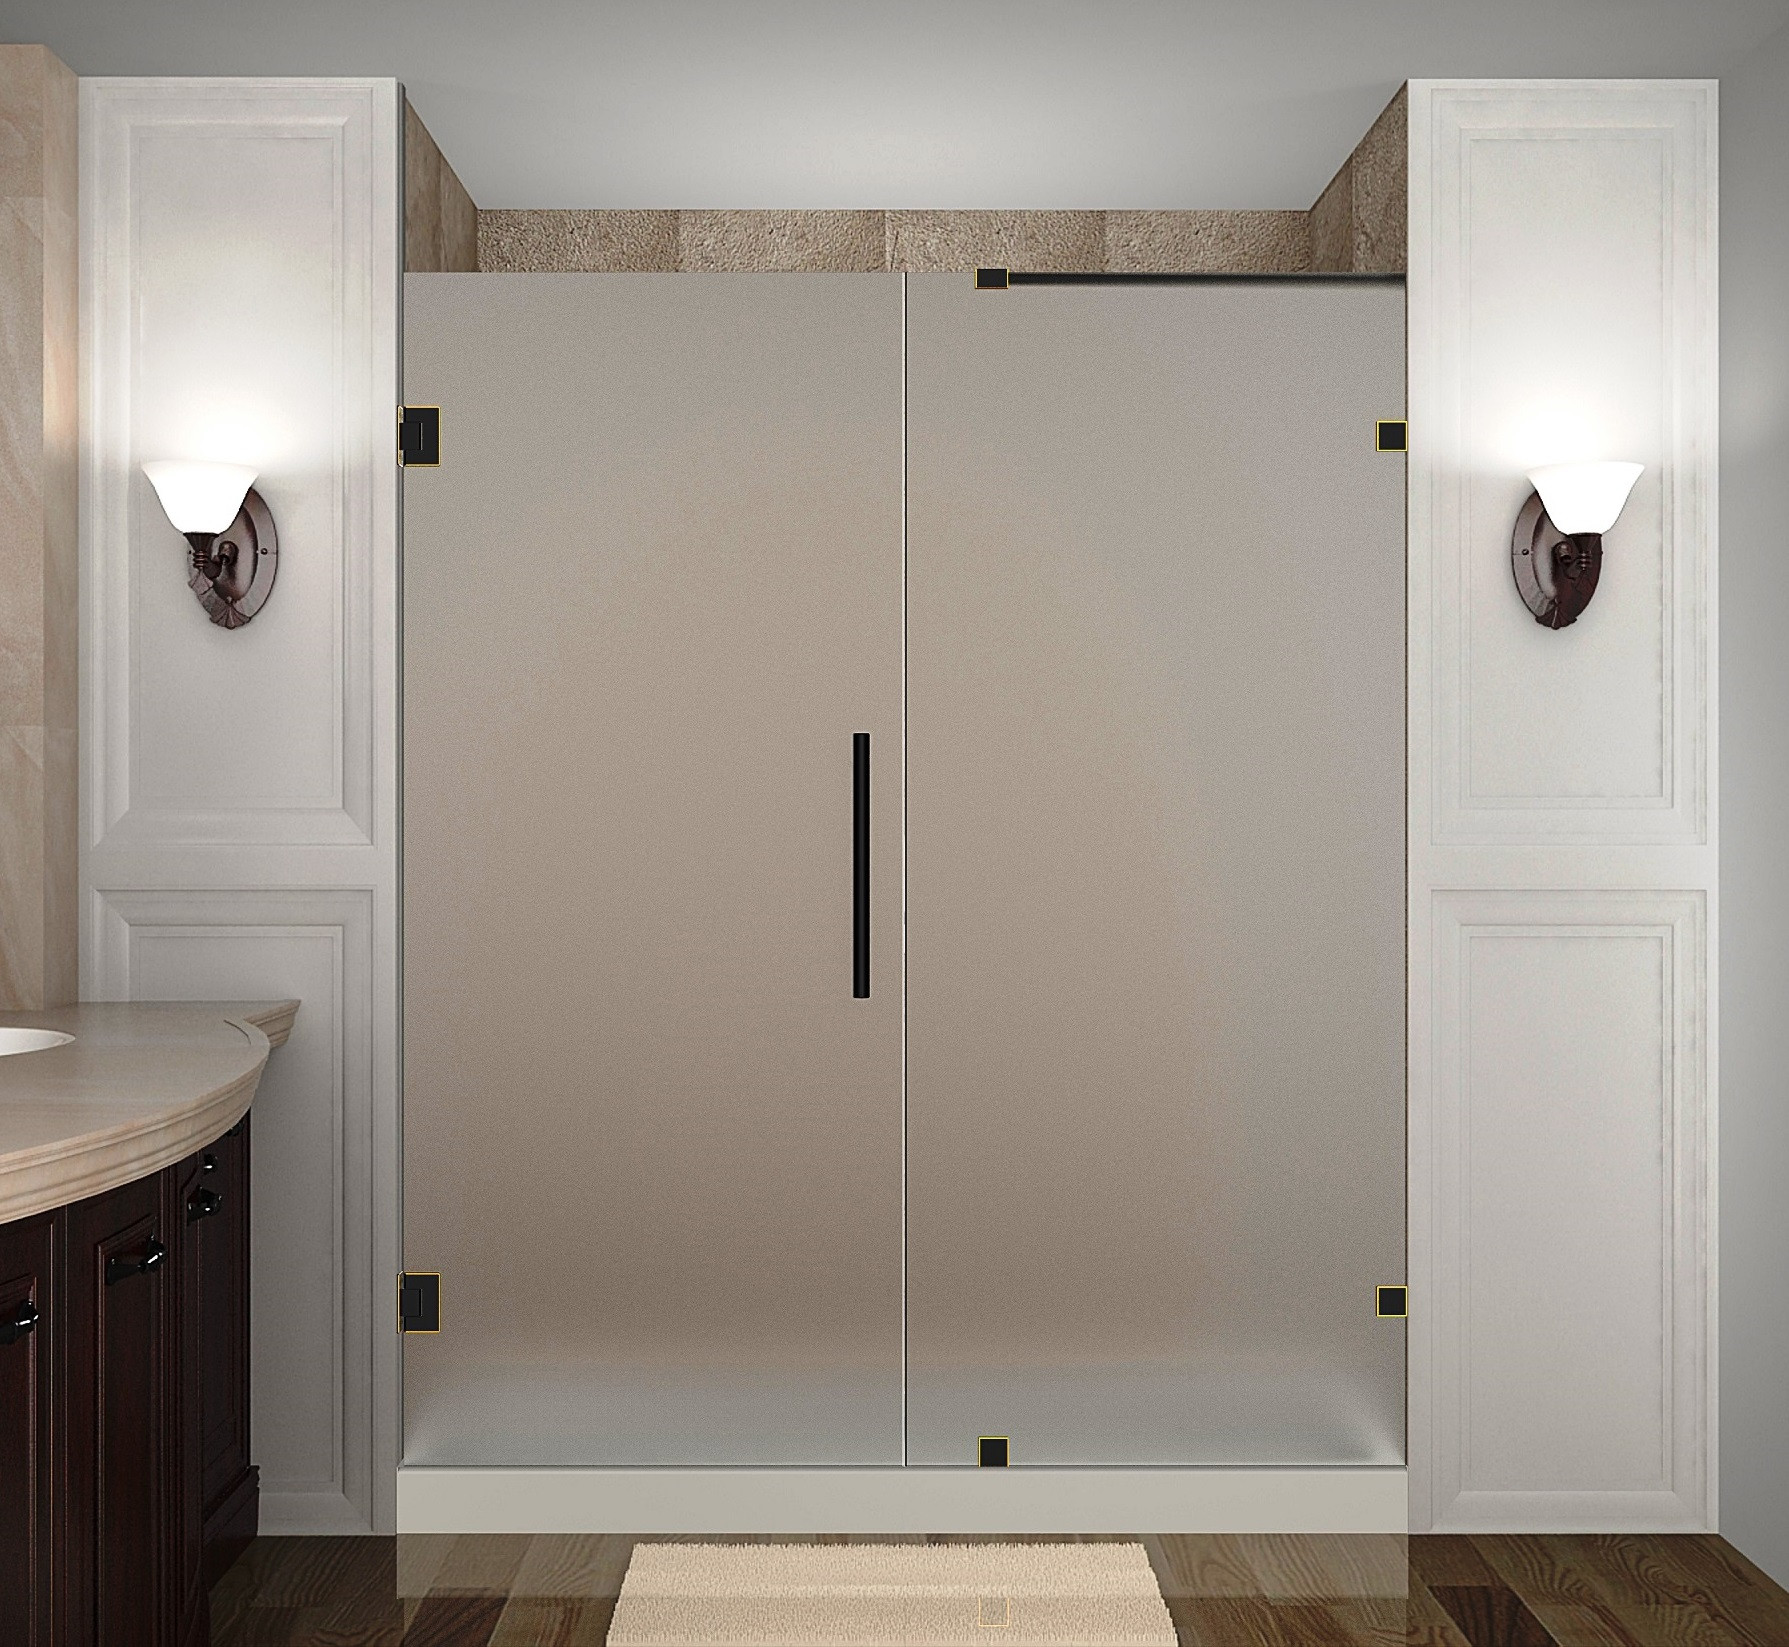 Aston Global SDR985F-ORB-72-10 Frameless Hinged Frosted Glass Shower Door In Oil Rubbed Bronze